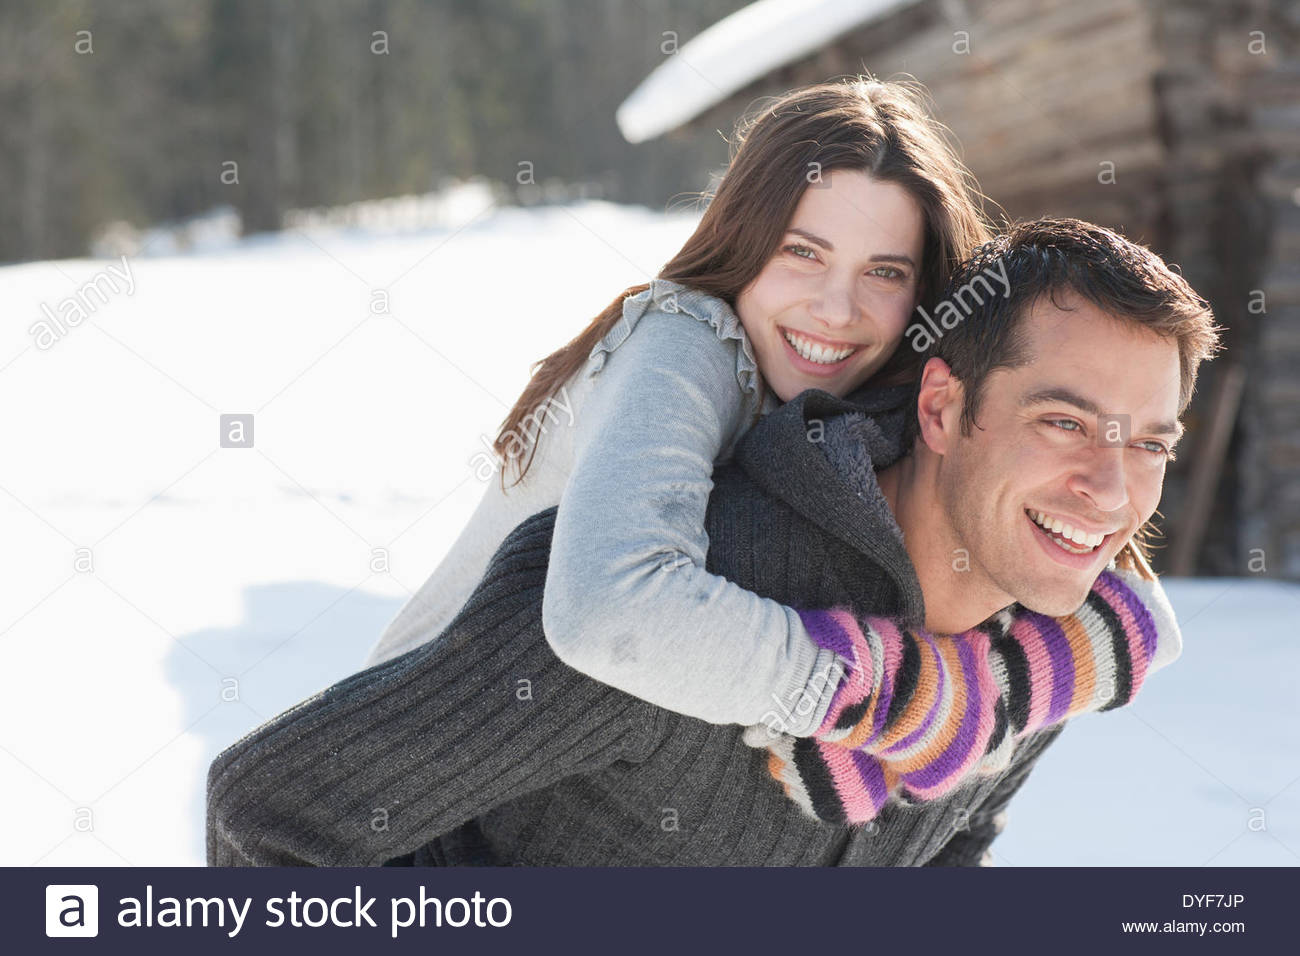 Man giving girlfriend piggyback ride - Stock Image